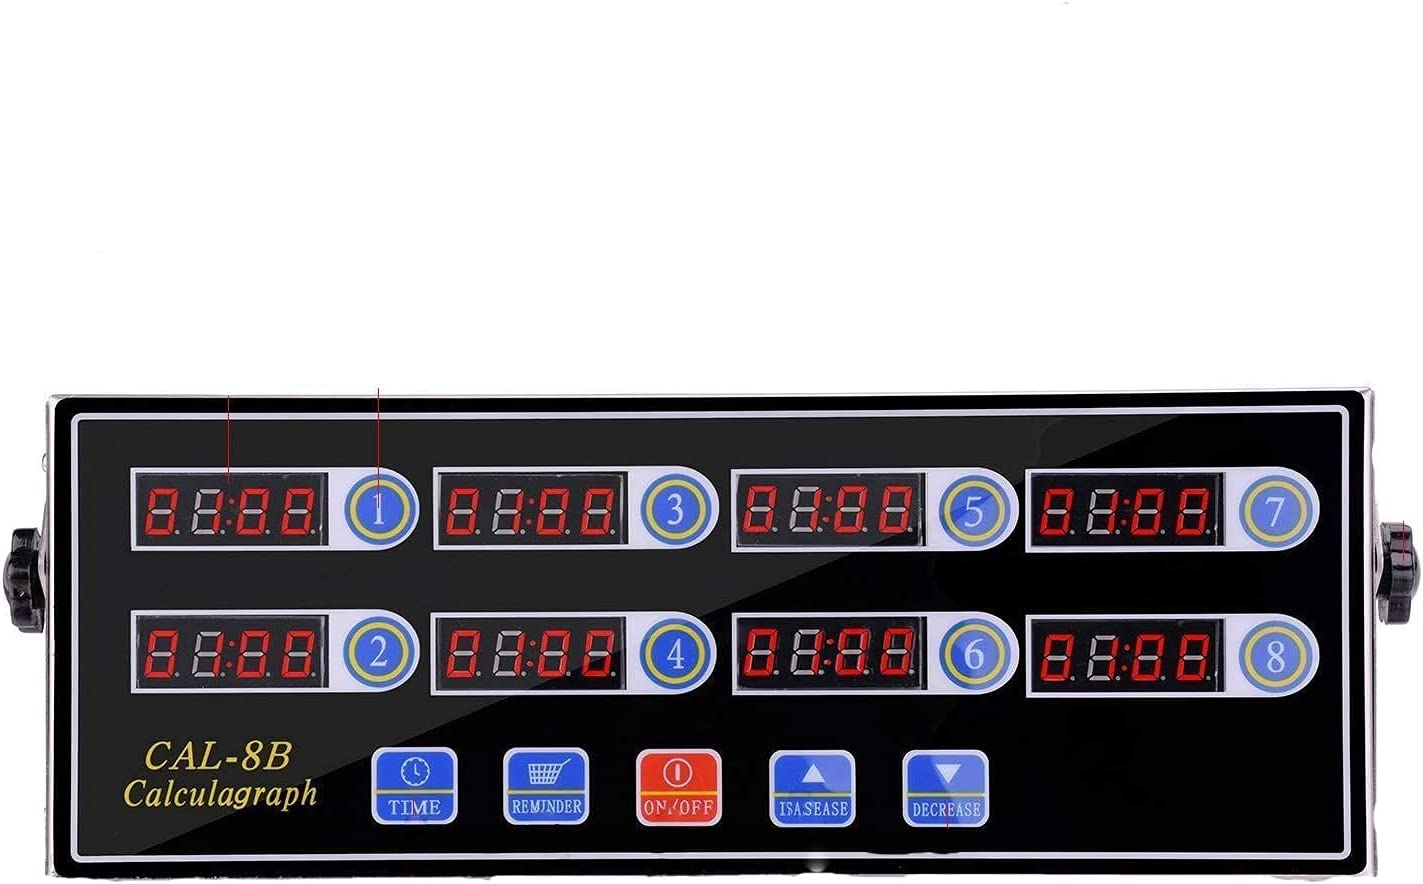 UOOYE 8-Channel Max 81% OFF Kitchen Timer Digital Display ! Super beauty product restock quality top! Clock LED Reminder